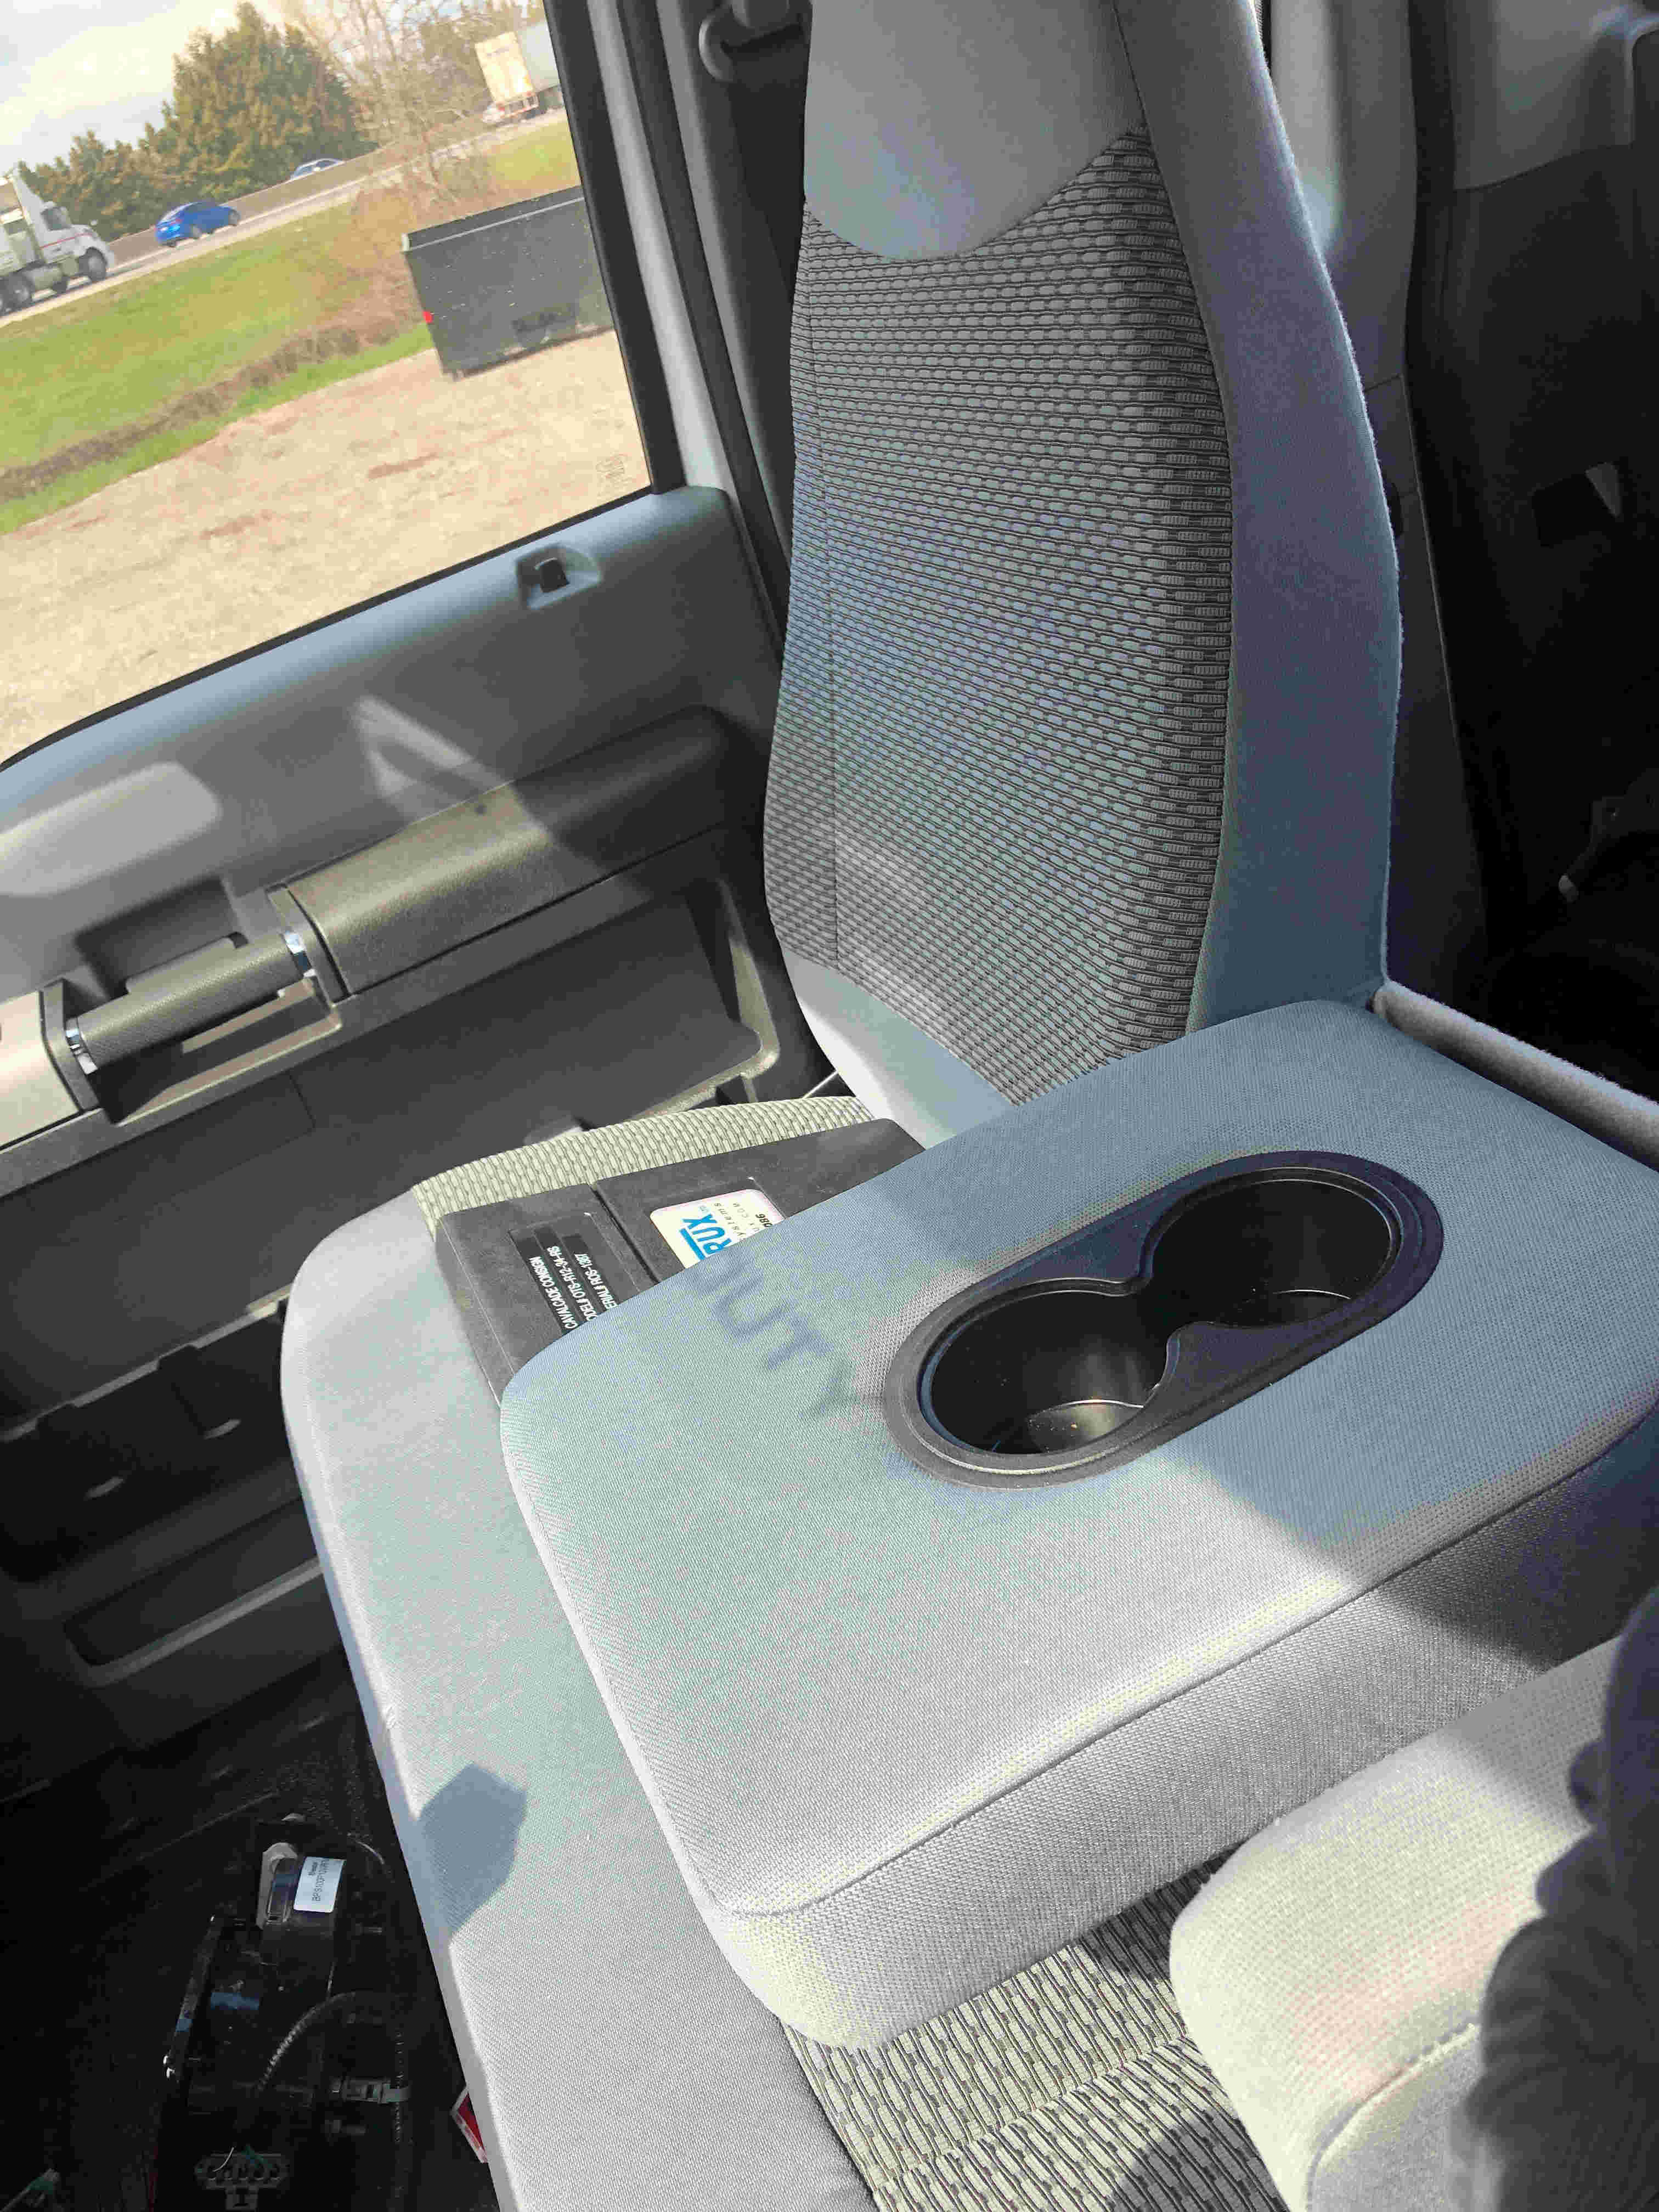 2021 Ford F750 12 On Trux System White (13)